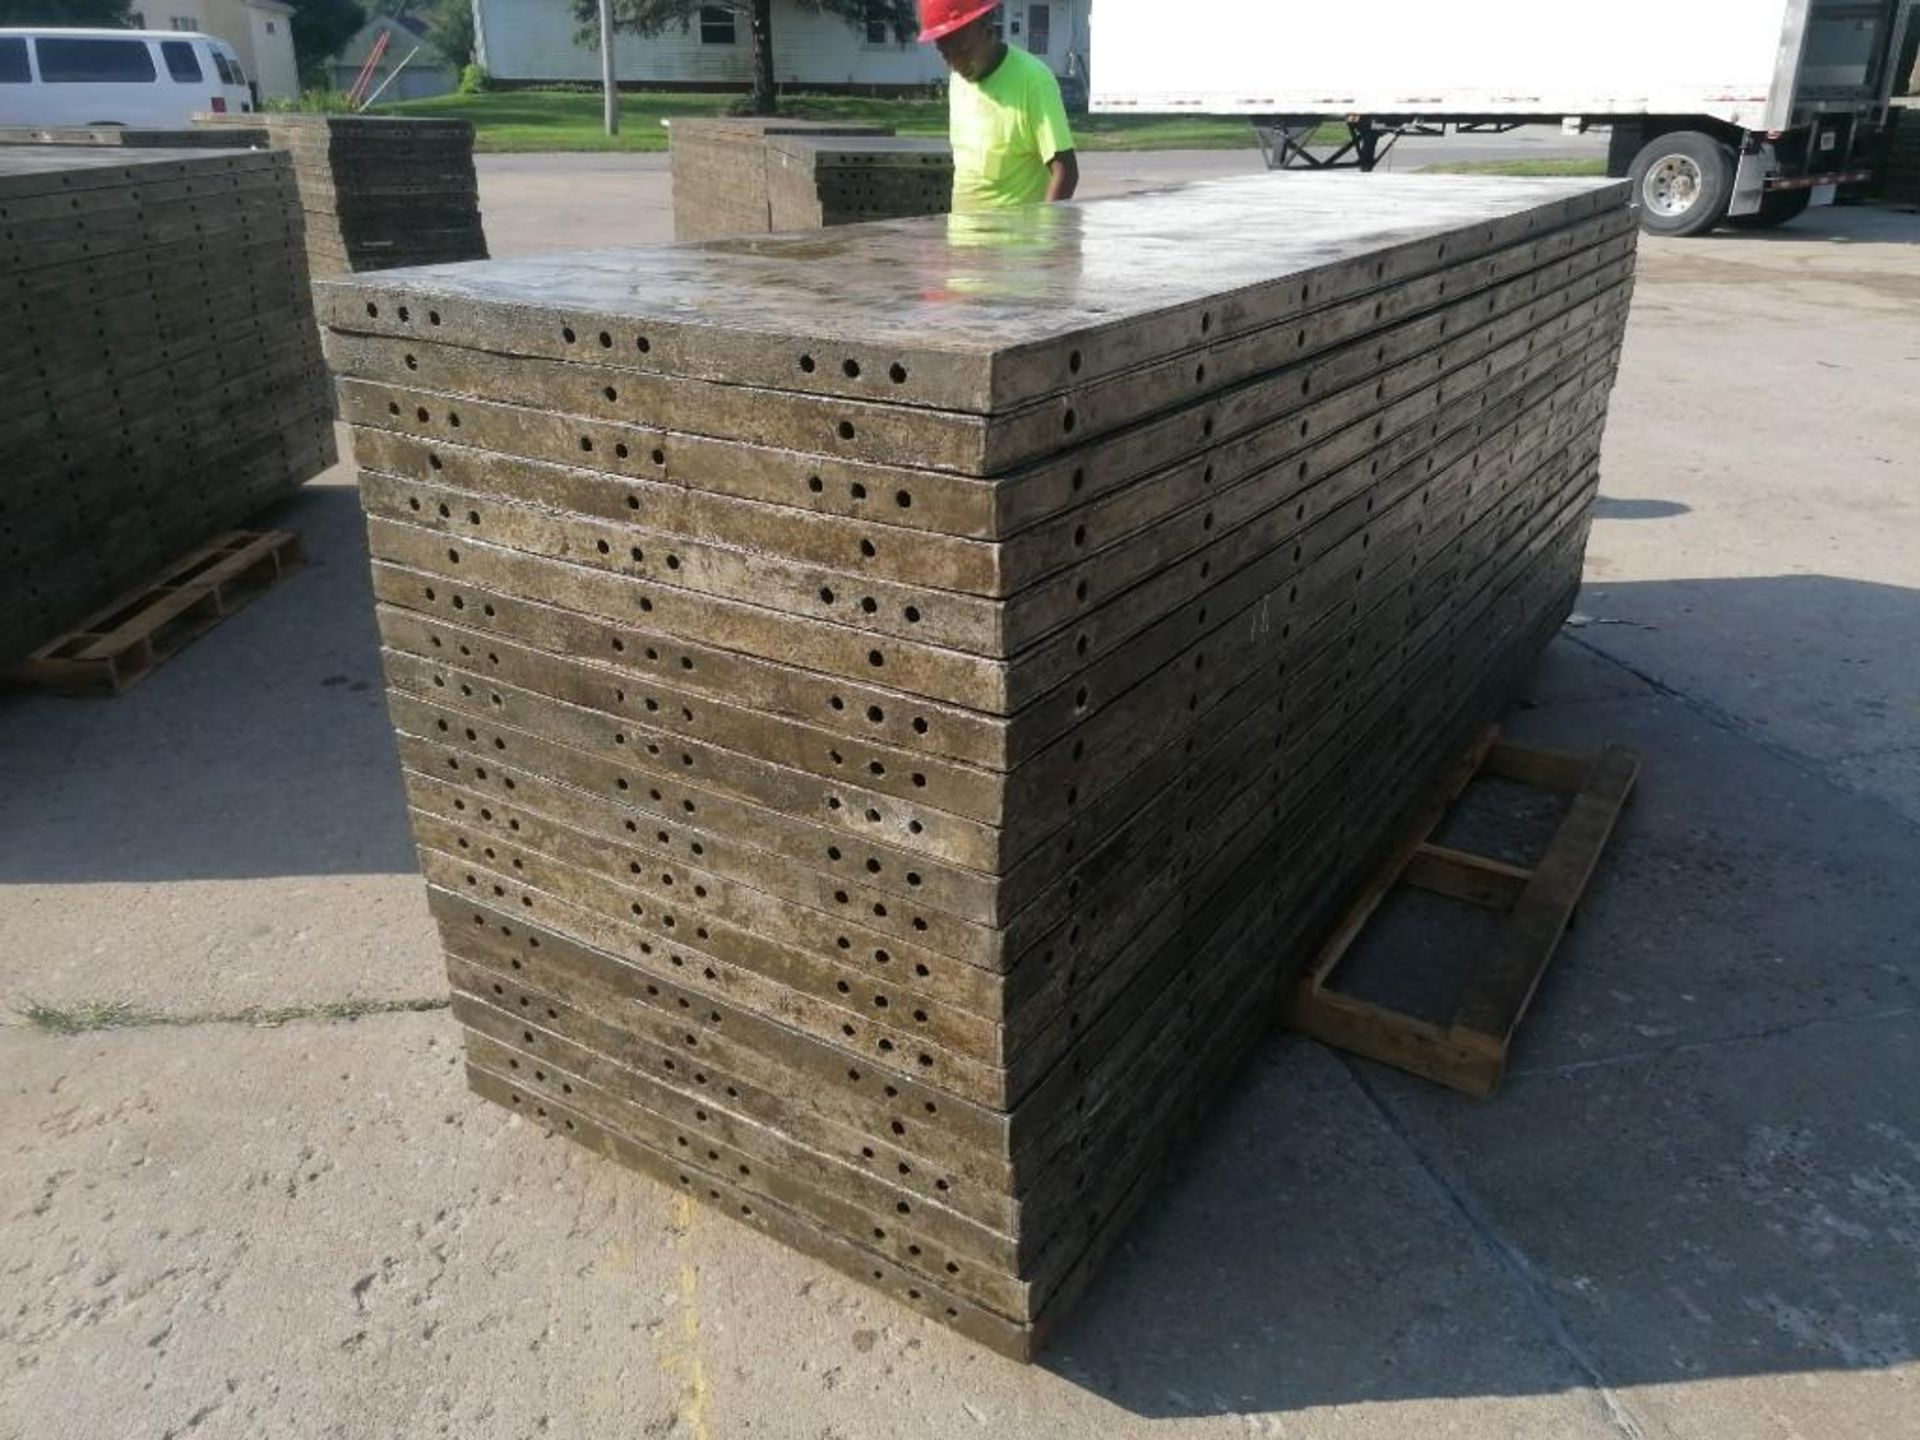 Lot 125 - (20) 3' x 10' Wall-Ties Aluminum Concrete Forms, Smooth 6-12 Hole Pattern. Located at 301 E Henry